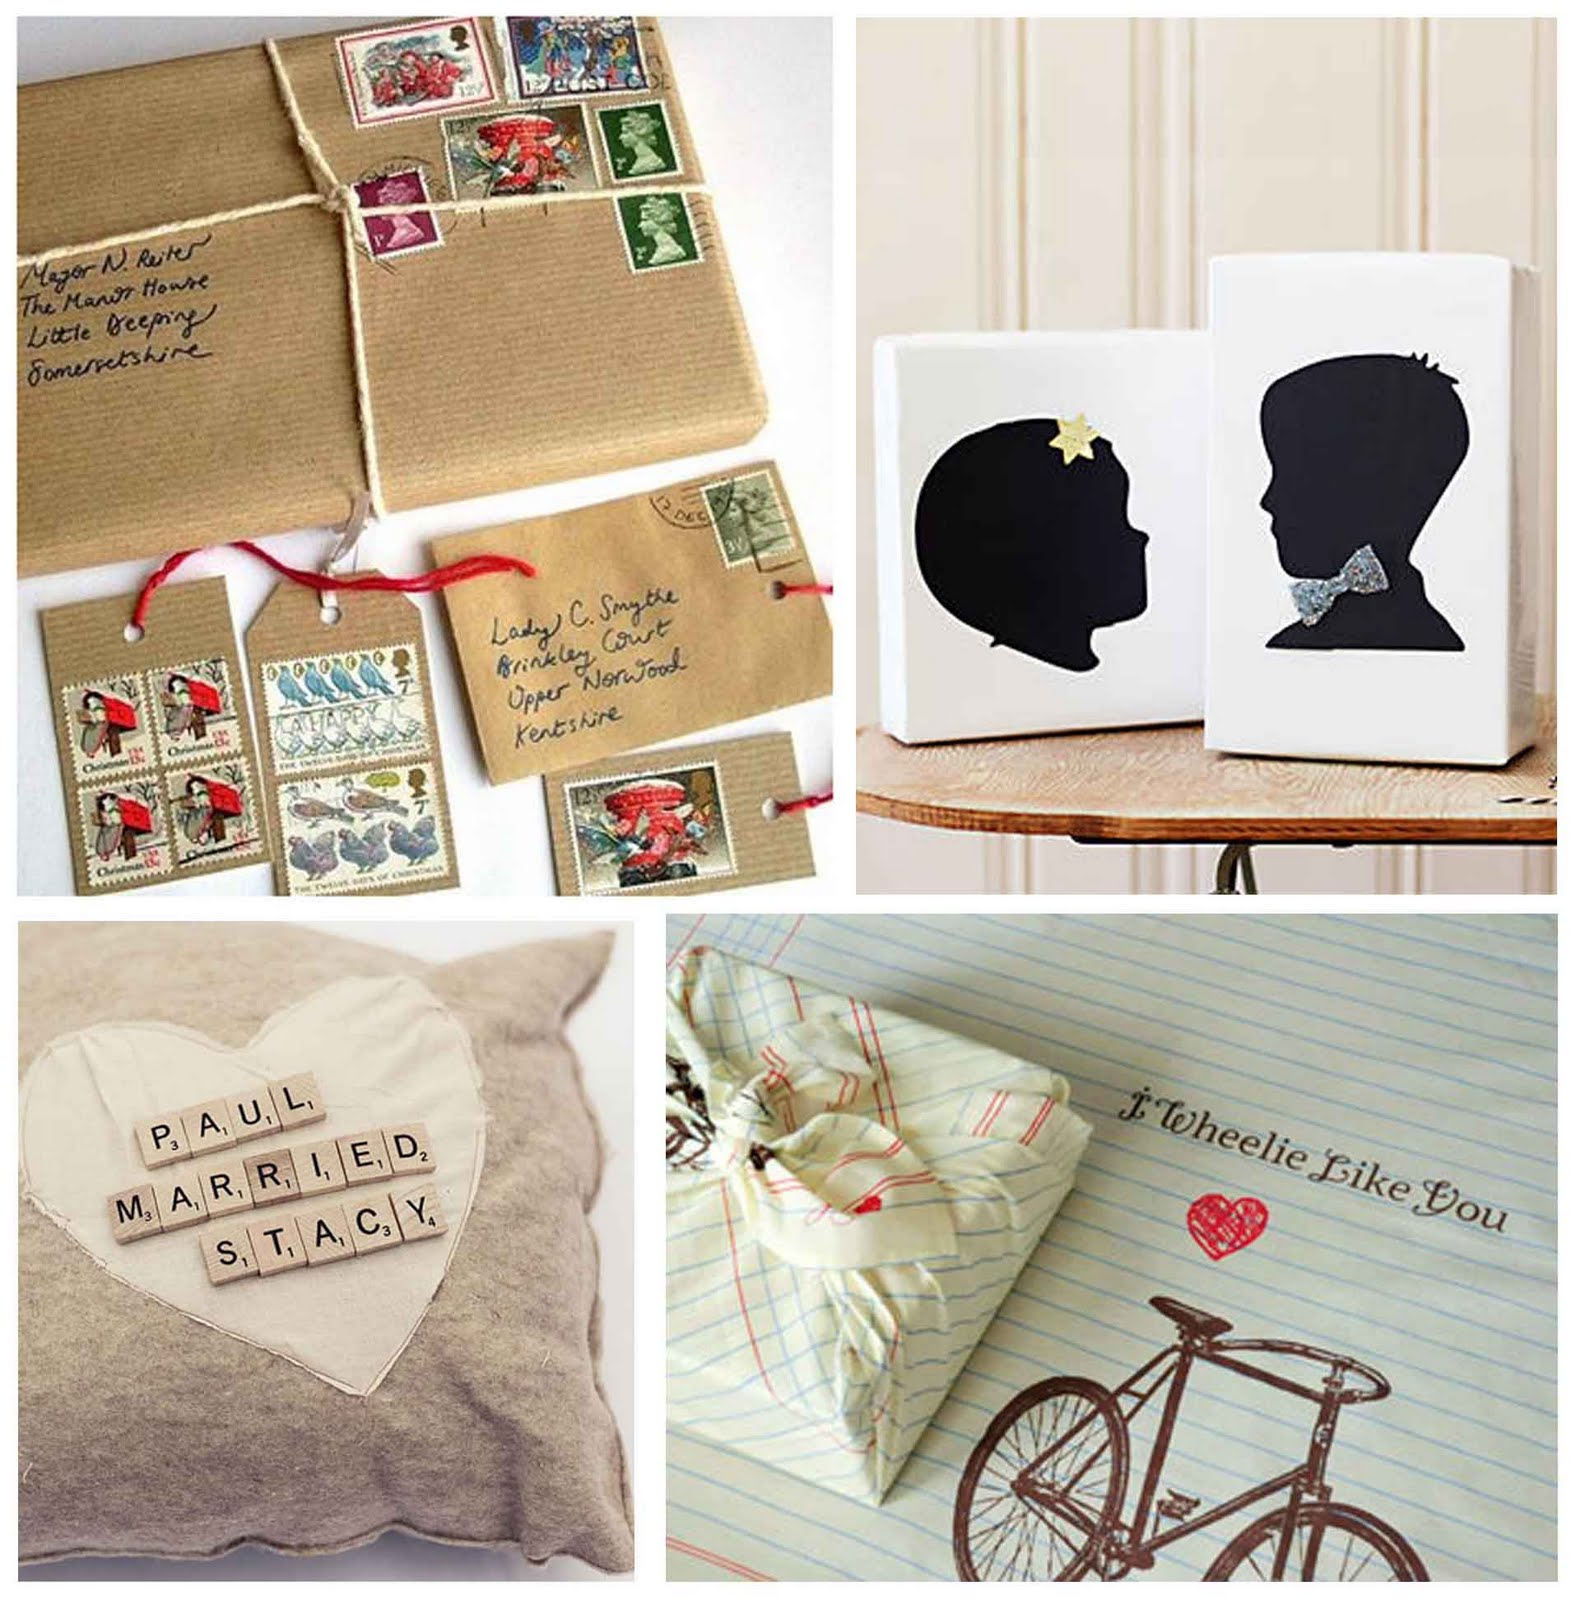 Ideas For Wedding Gift: Simply Fun Stuff: Creative Wedding Gift Wrap Ideas